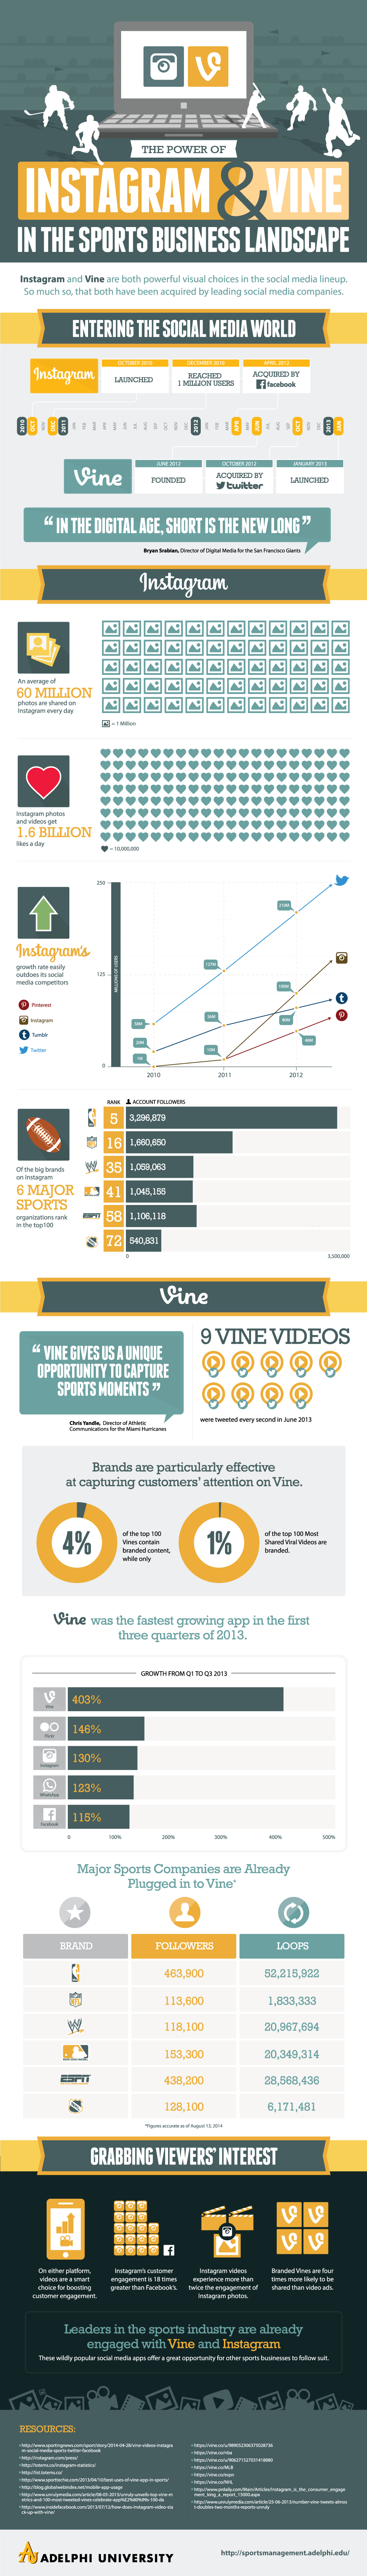 The Power of Instagram & Vine In the Sports Business Landscape